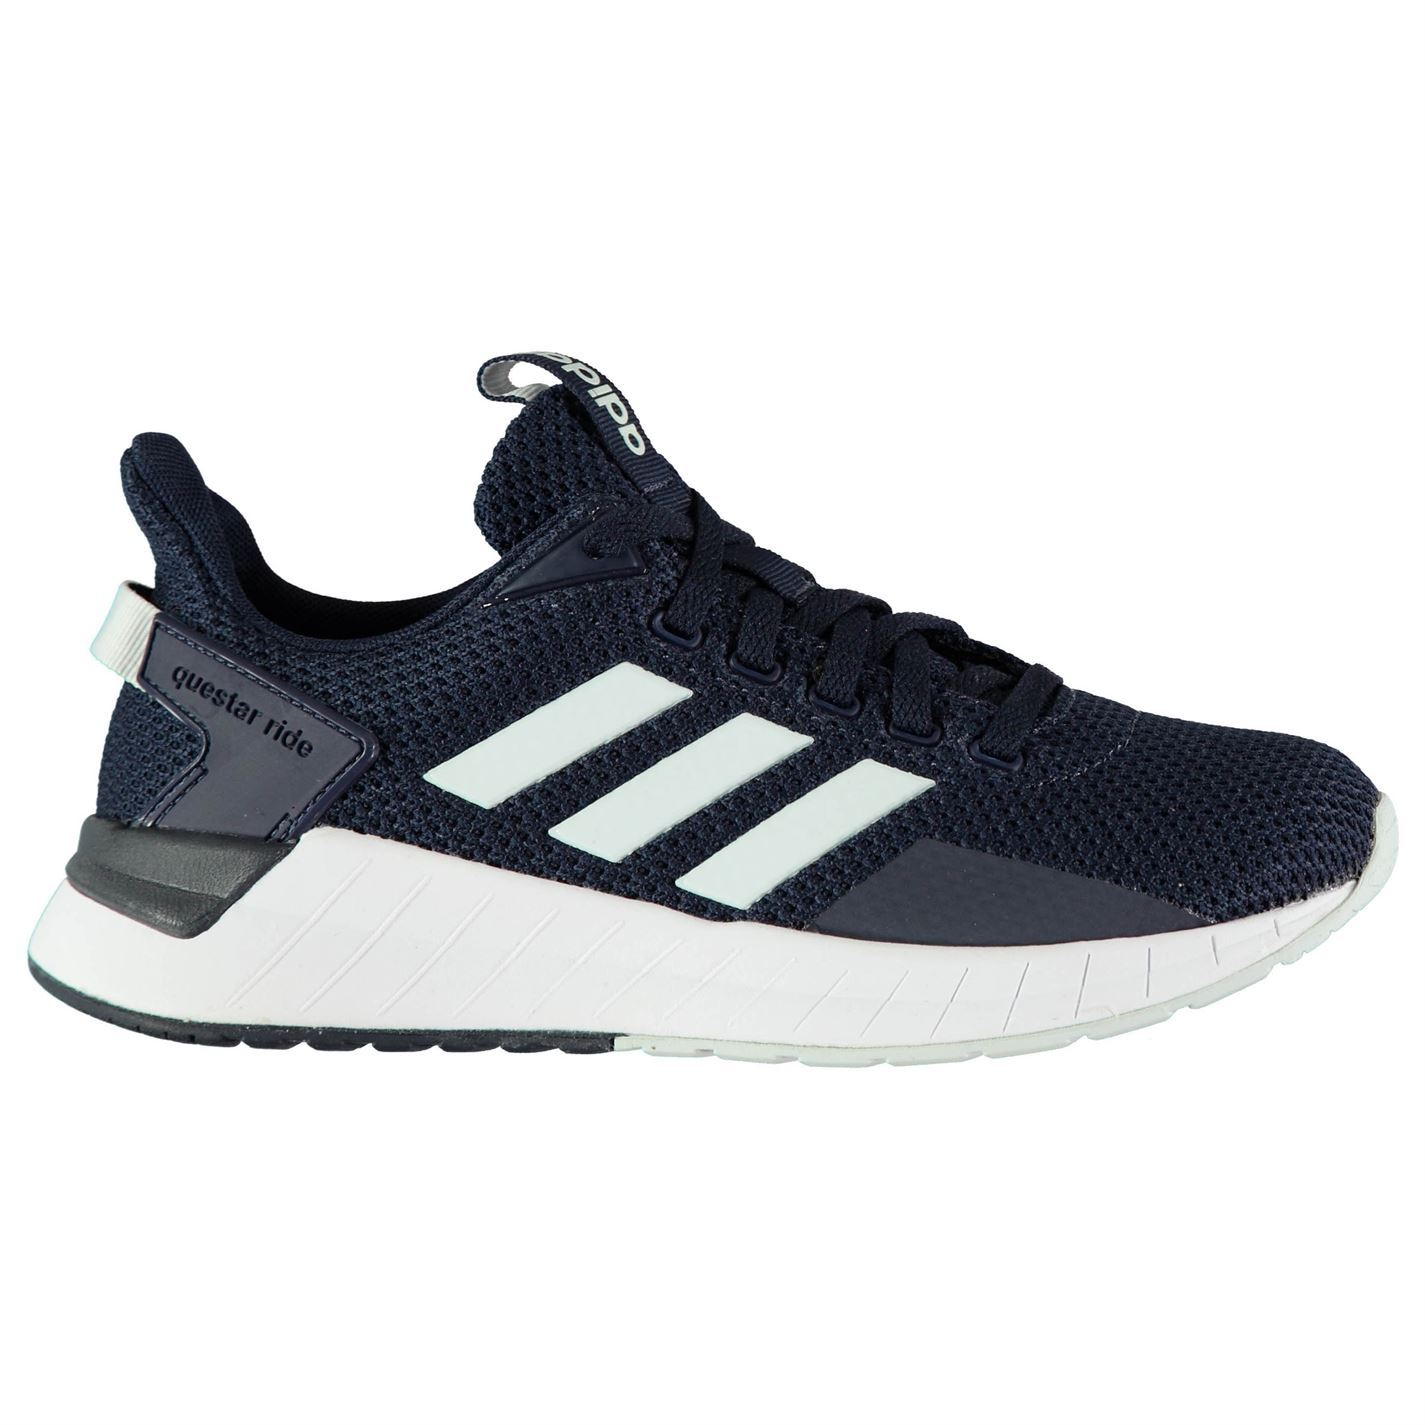 Adidas Damenschuhe Questar Ankle Ride Trainers Runners Lace Up Padded Ankle Questar Collar Tongue 4599f9